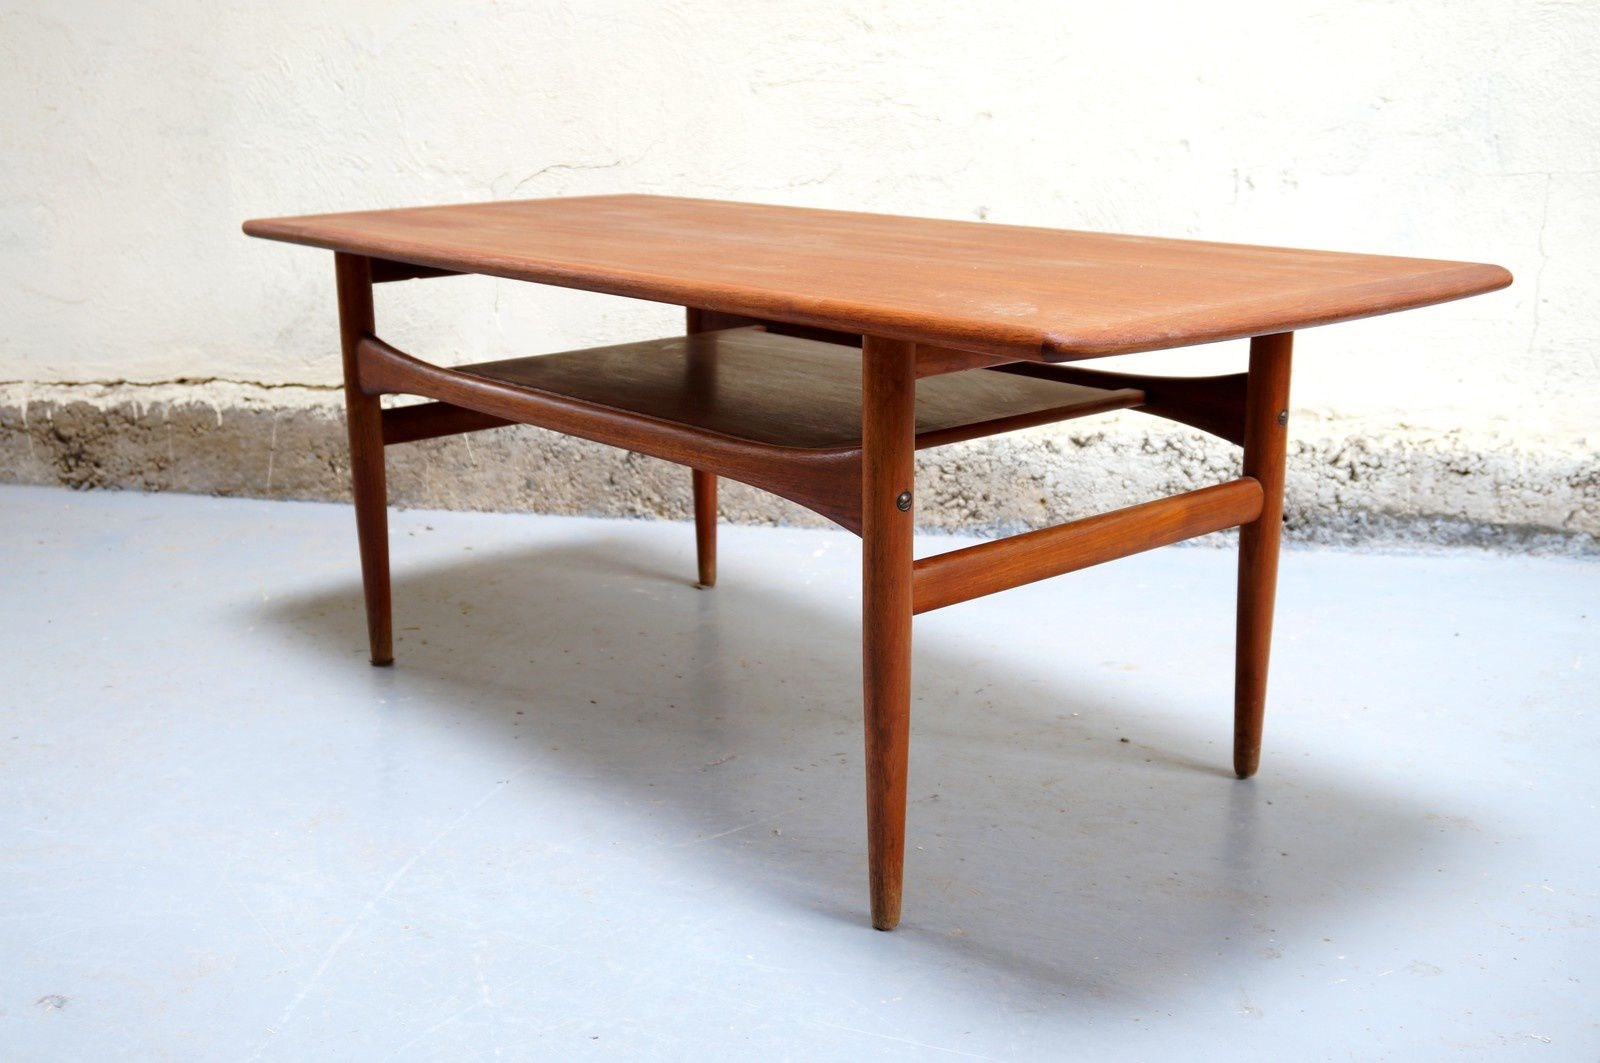 Table basse scandinave arrebo mobler danois vintage danish for Table haute scandinave